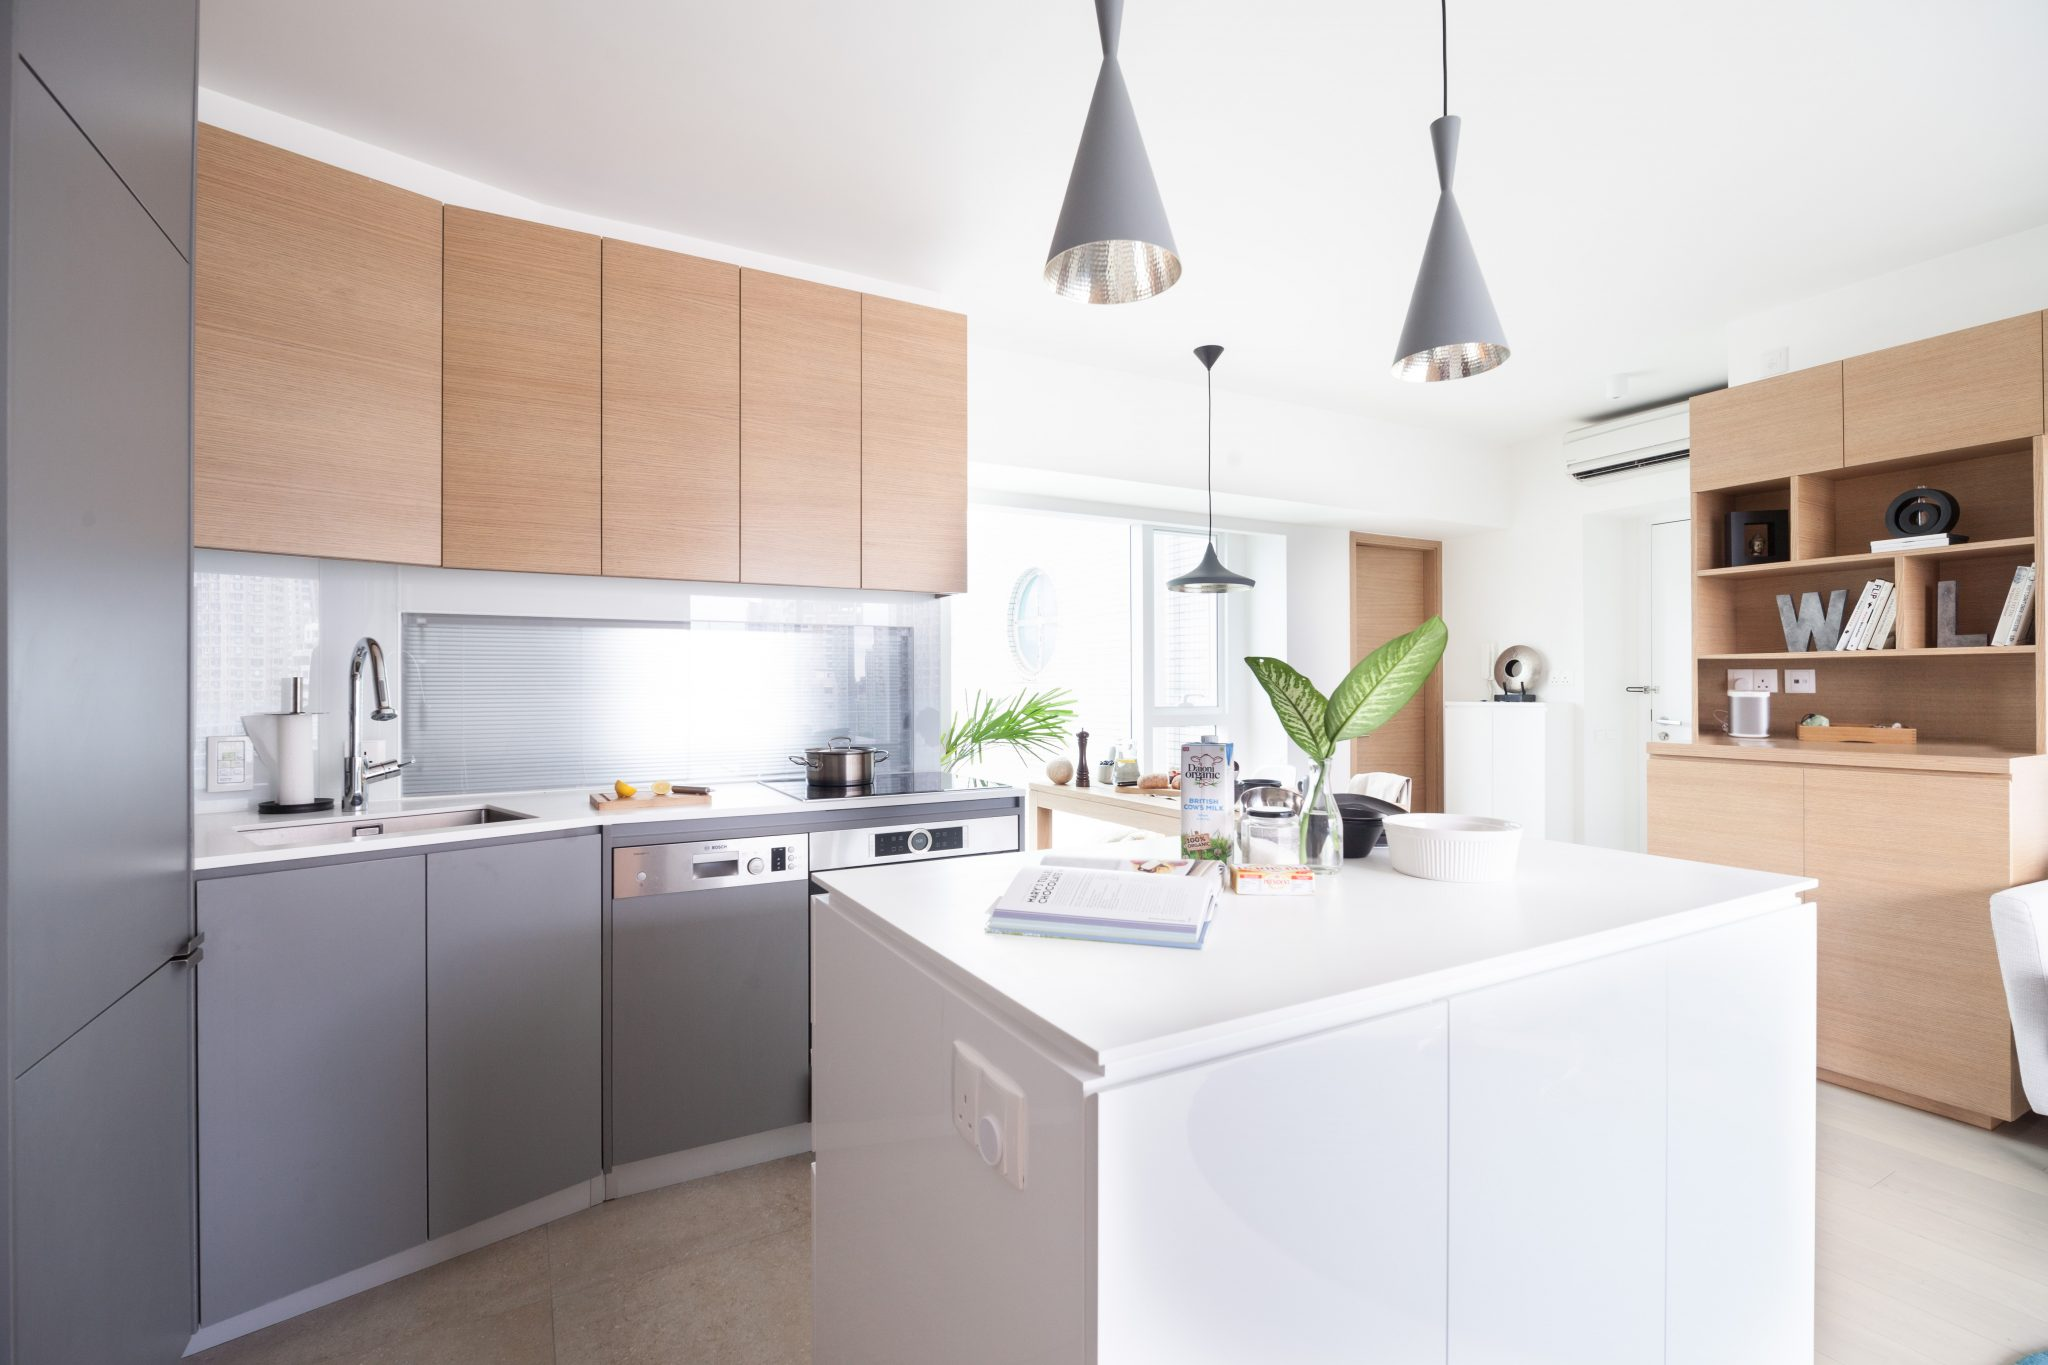 Less is more: How to incorporate Scandinavian design into space ...